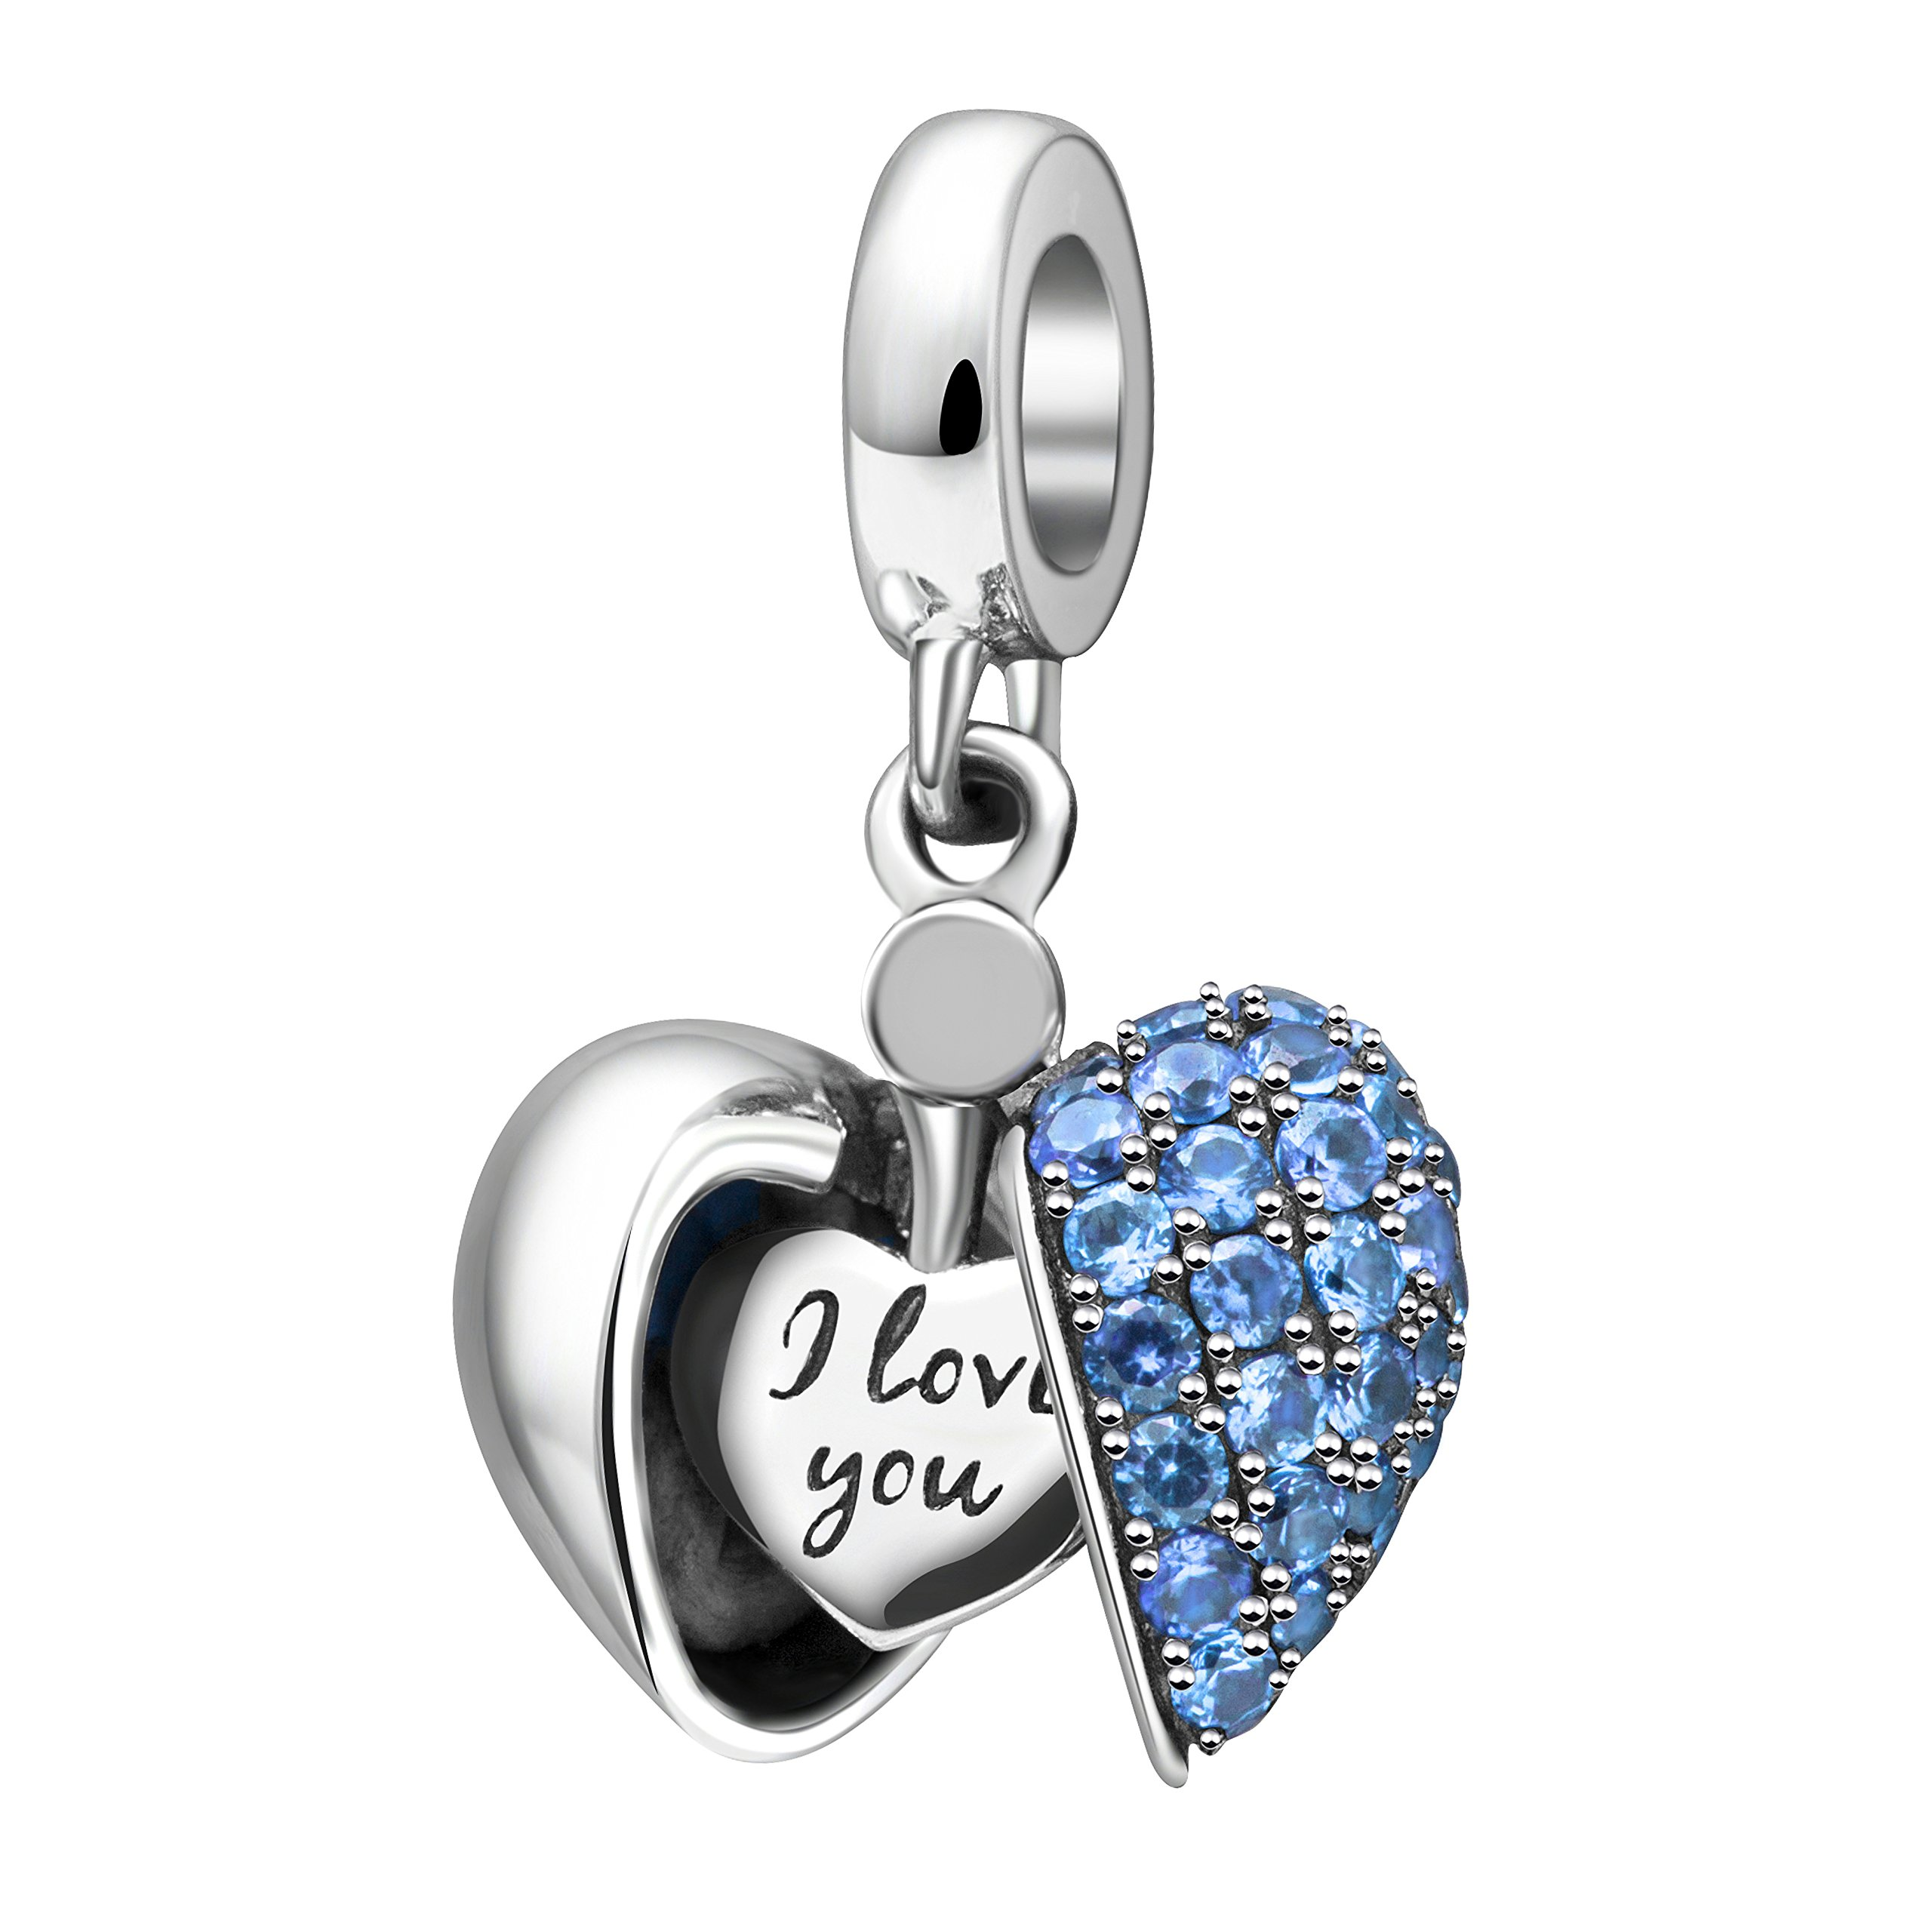 I Love You Charm 925 Sterling Silver Love Heart Dangle Bead Charms for European Charms Bracelet Necklace (Blue)